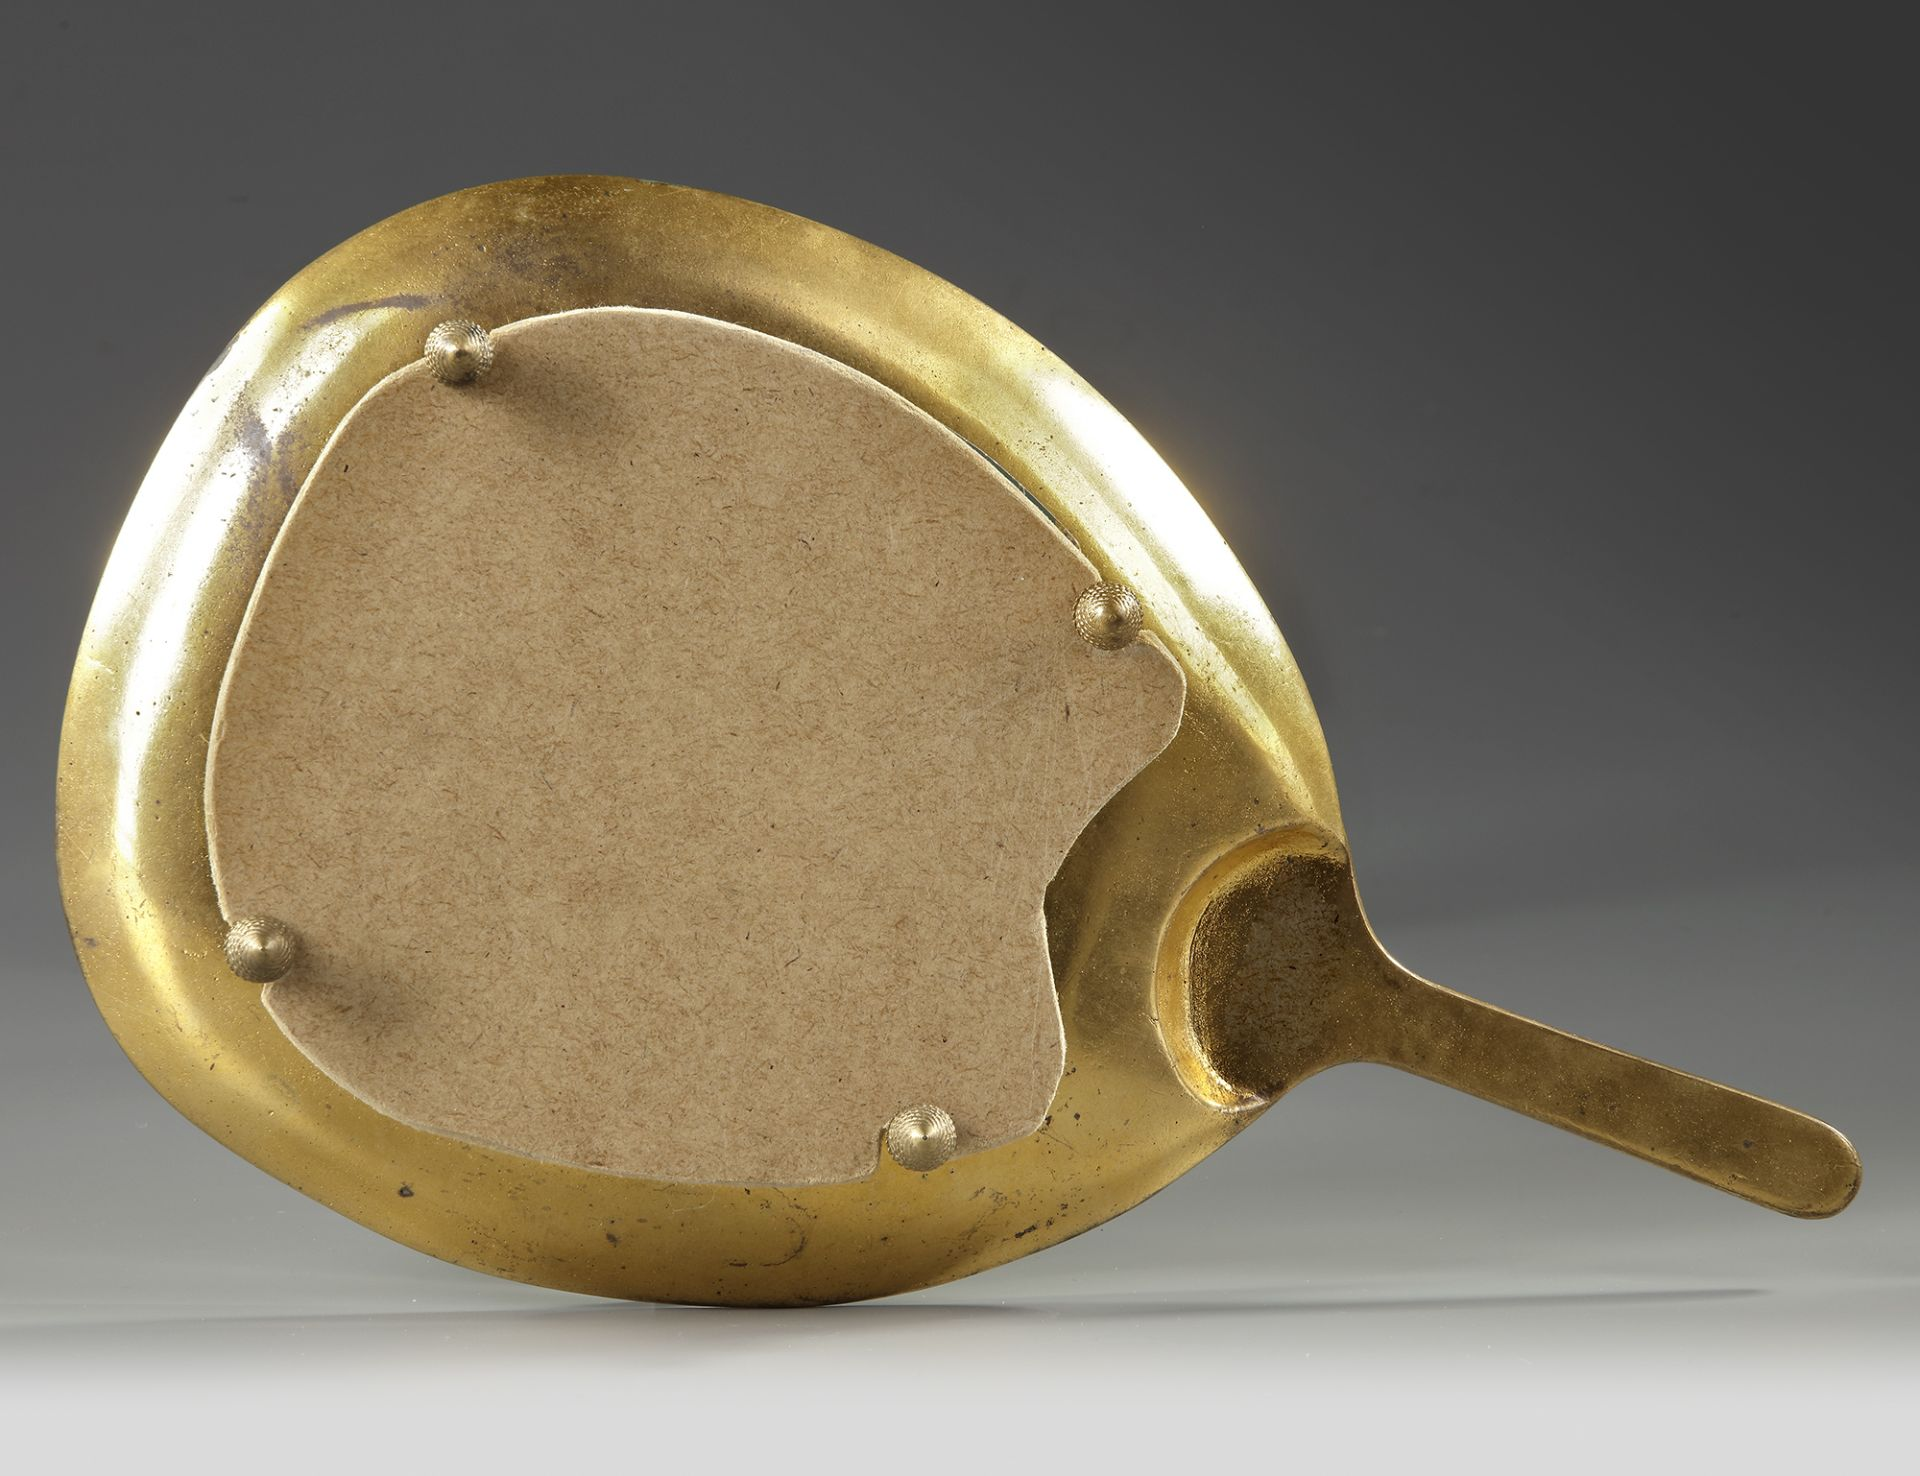 A FRENCH GILT BRONZE AND ENAMELED HAND MIRROR, 19TH CENTURY - Image 3 of 3